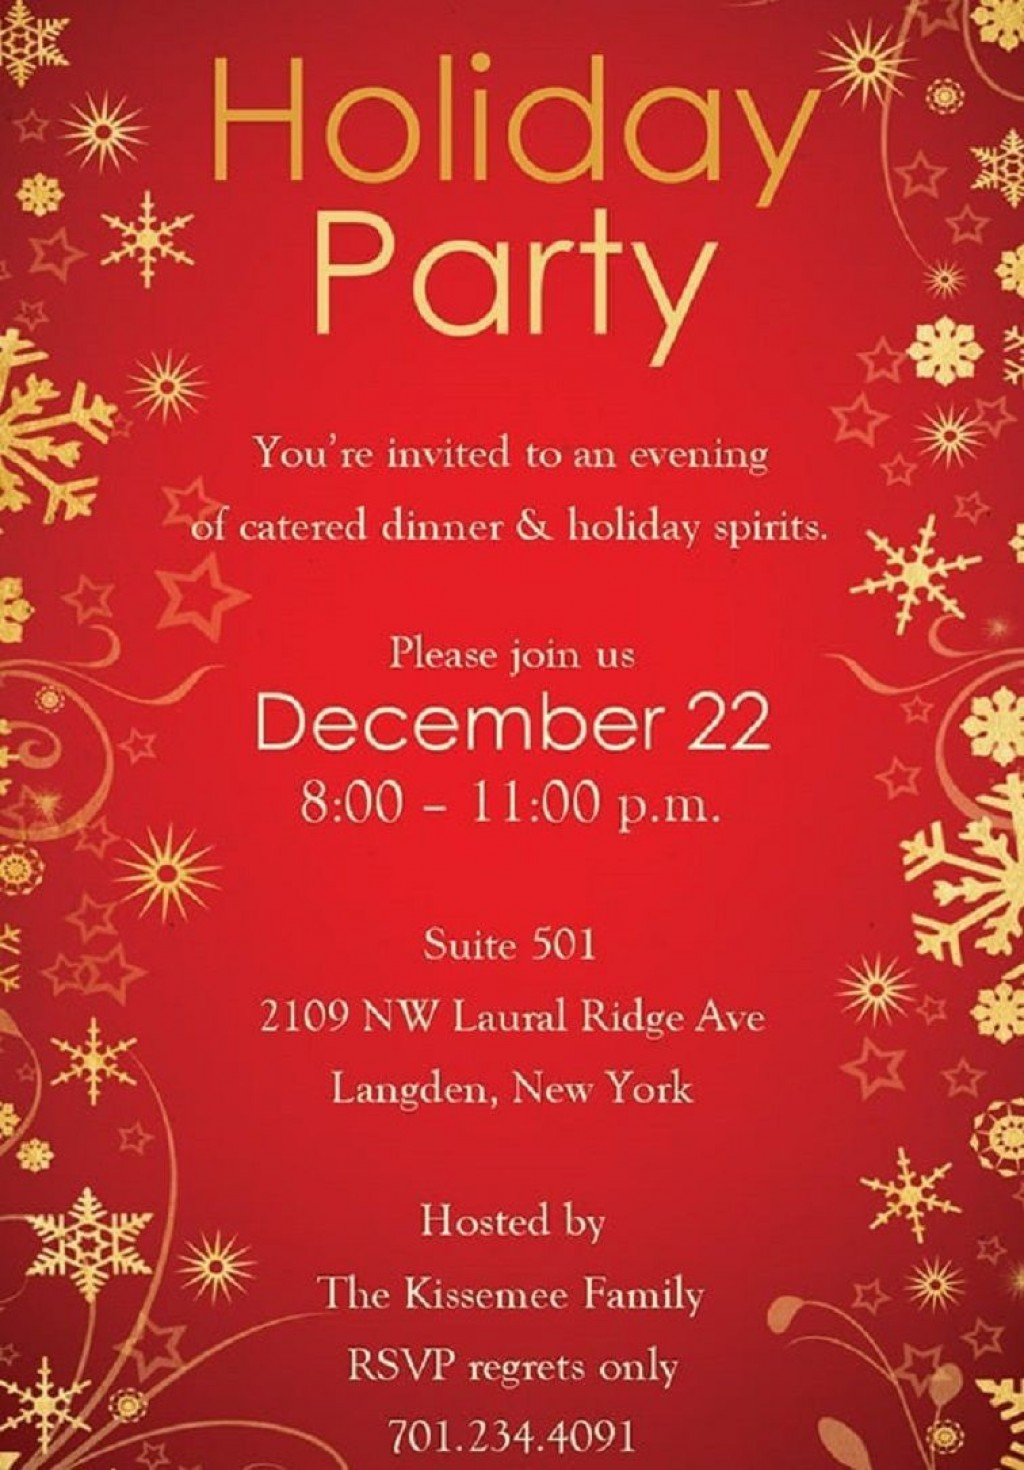 001 Awful Free Holiday Invitation Template Sample  Online Party ChristmaLarge